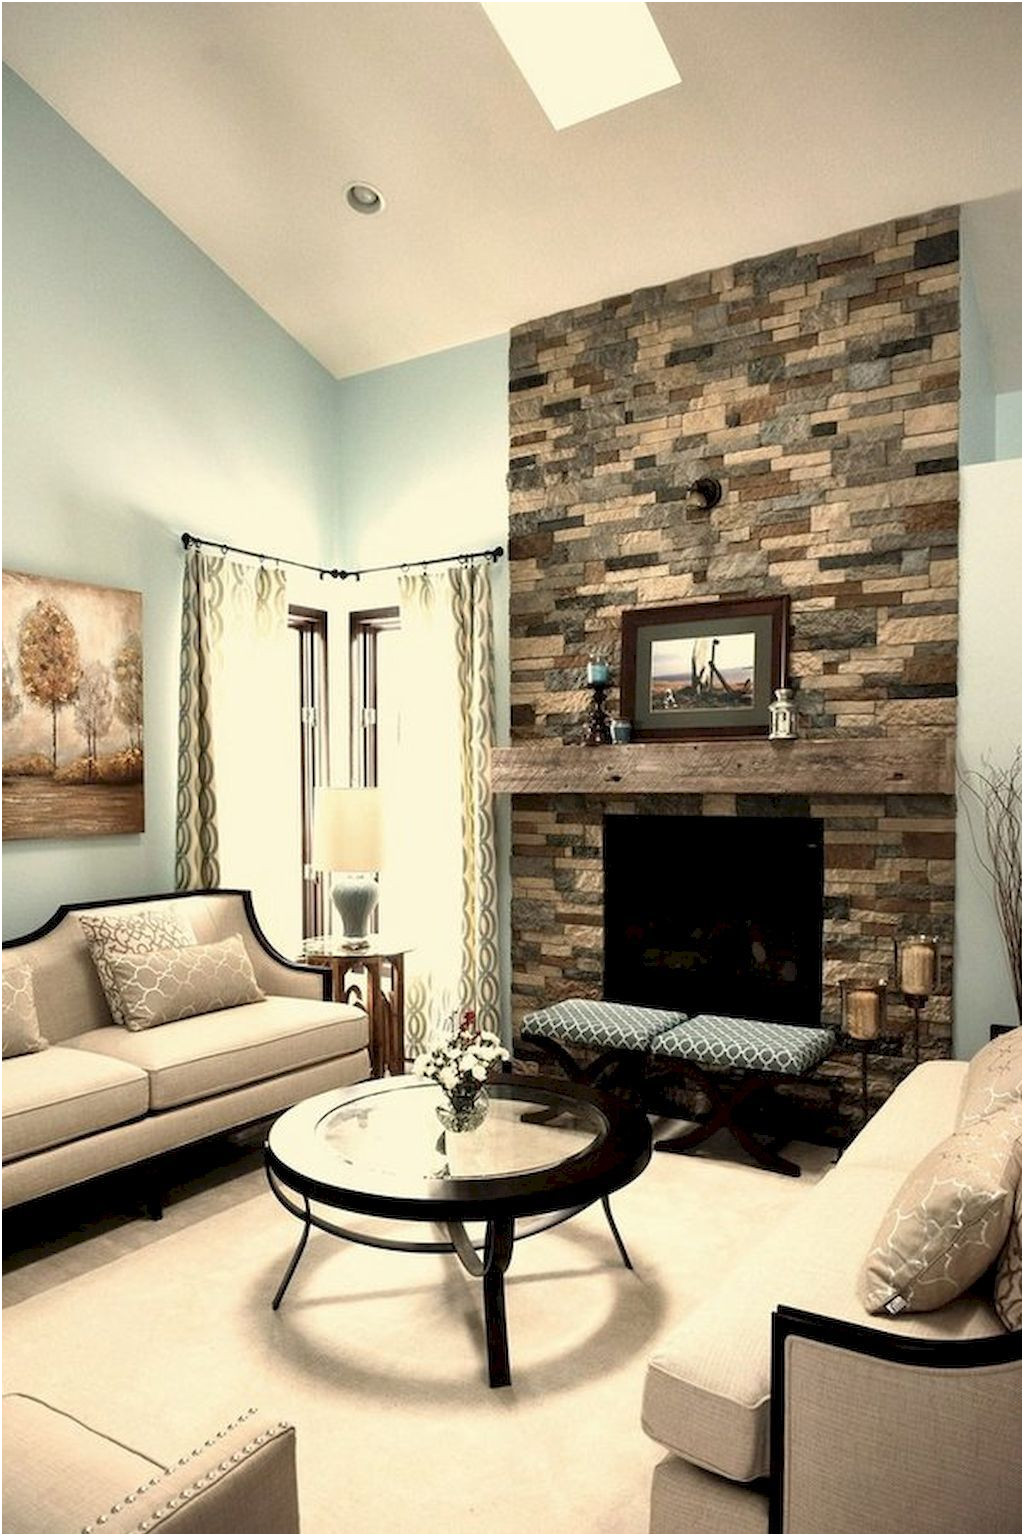 Ideas for Decorating Fireplace Lovely 70 Gorgeous Apartment Fireplace Decorating Ideas